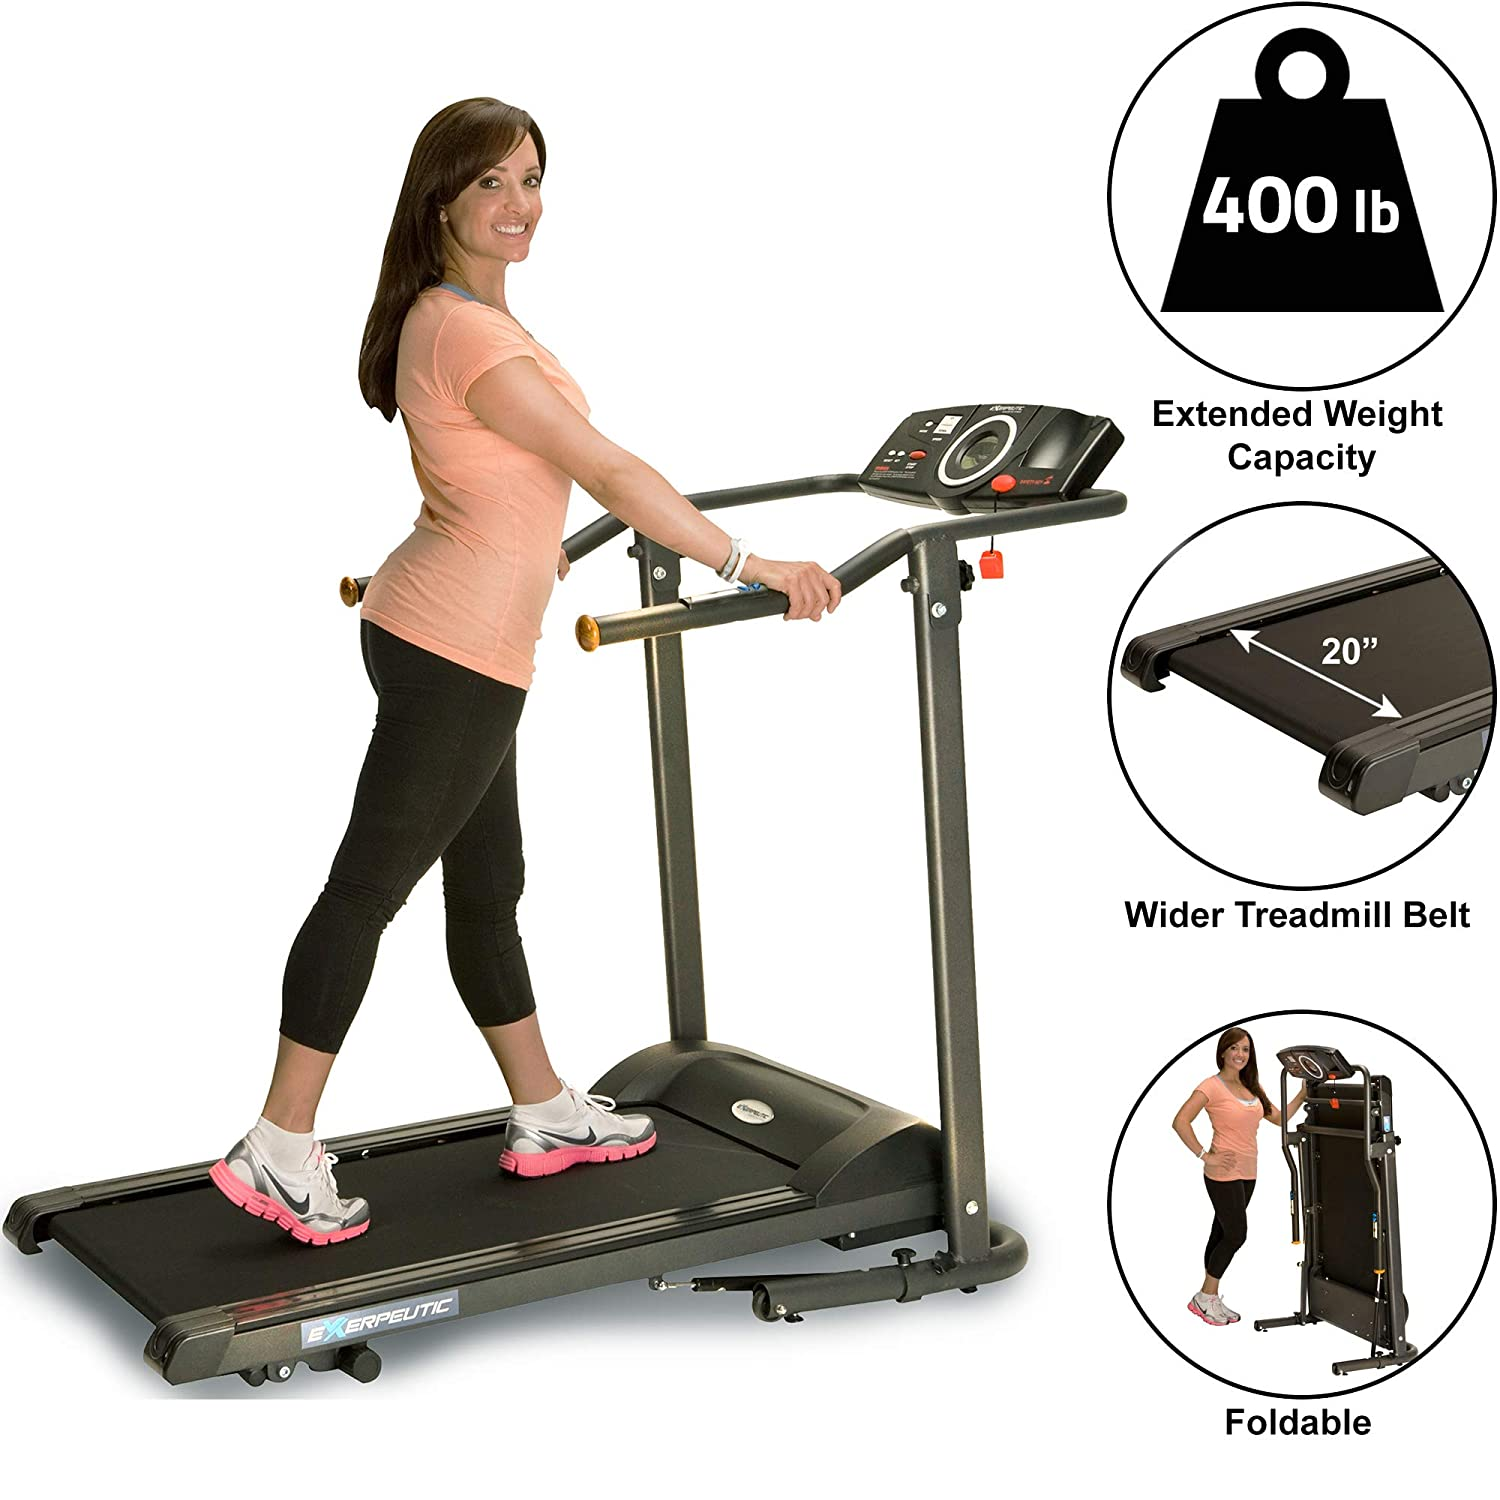 Exerpeutic TF1000 (Best for People with Health Problems)